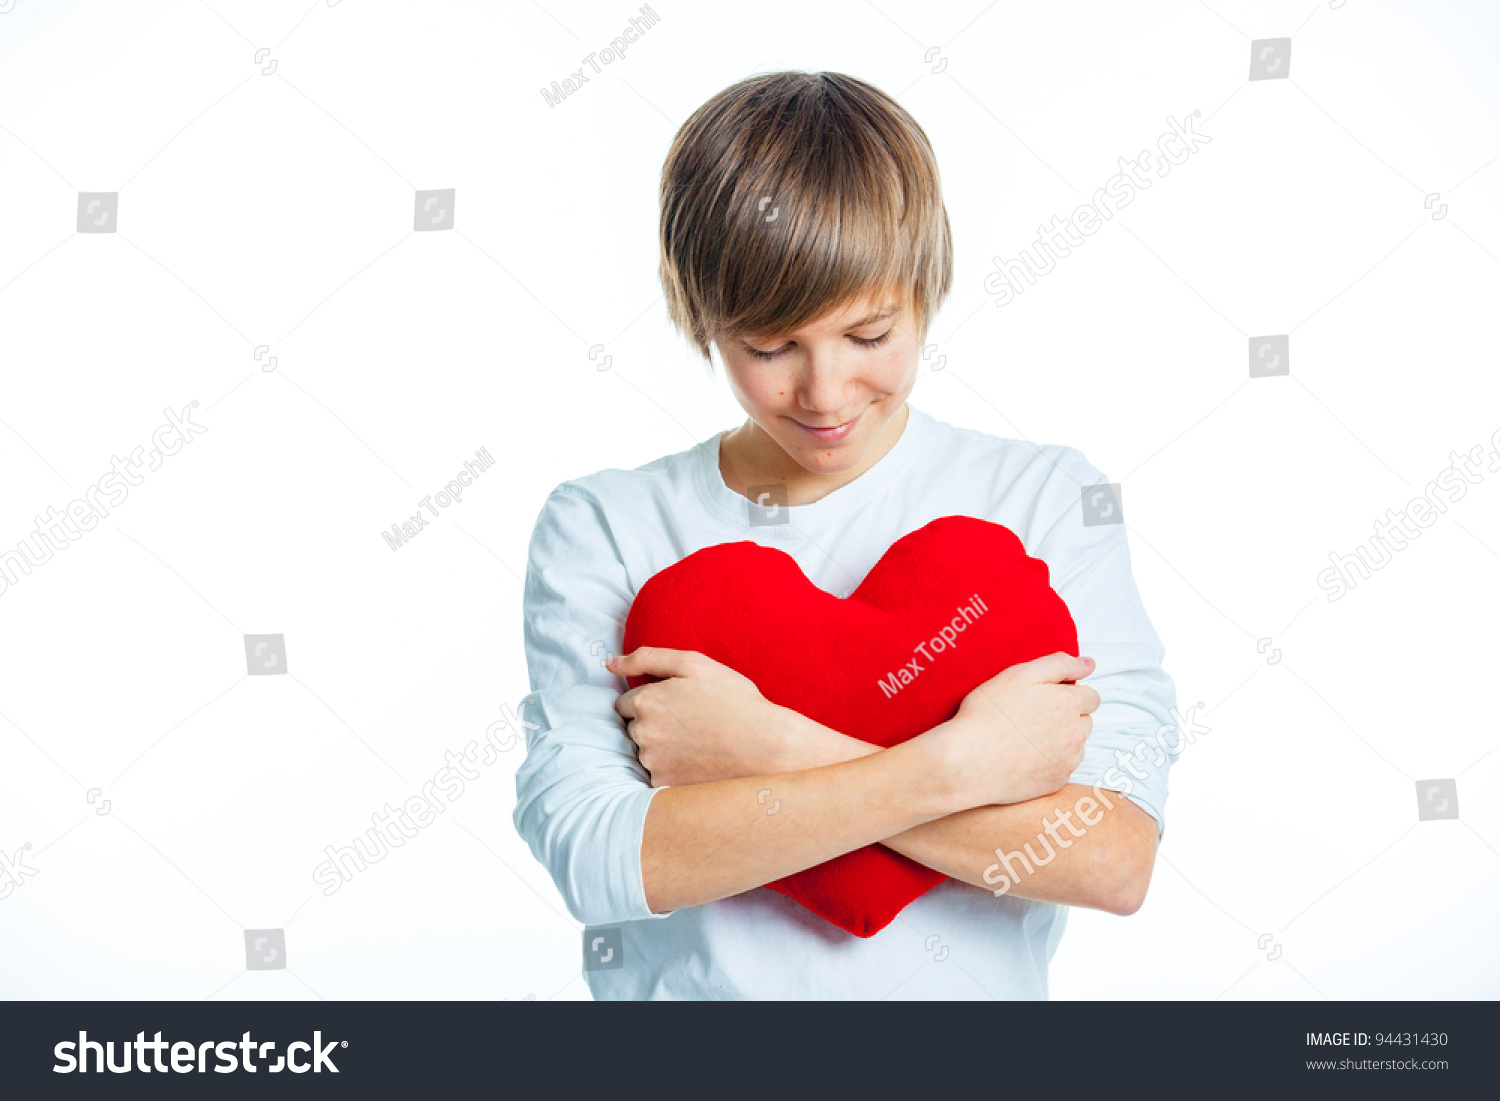 380340f47f76 Cute Young Boy Love Red Plush Stock Photo (Edit Now) 94431430 ...